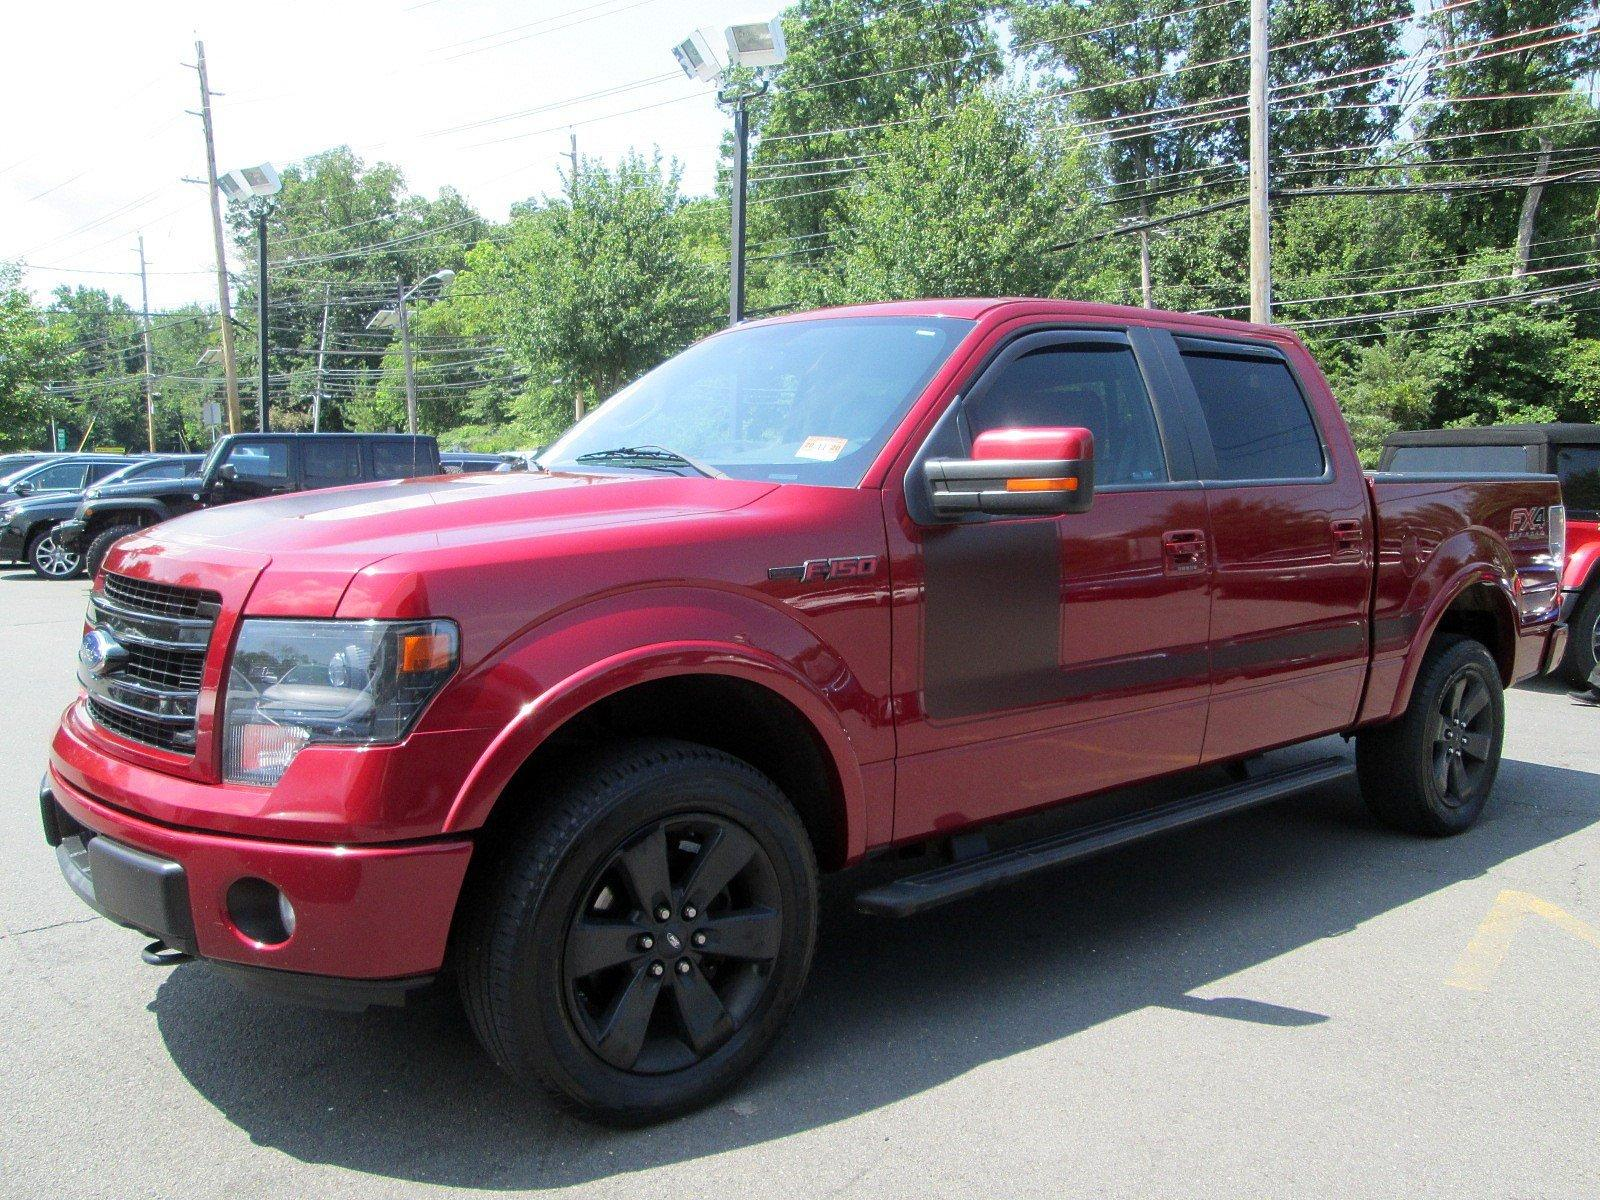 Ford Fx4 For Sale >> Used 2013 Ford F 150 Fx4 For Sale 22 495 Victory Lotus